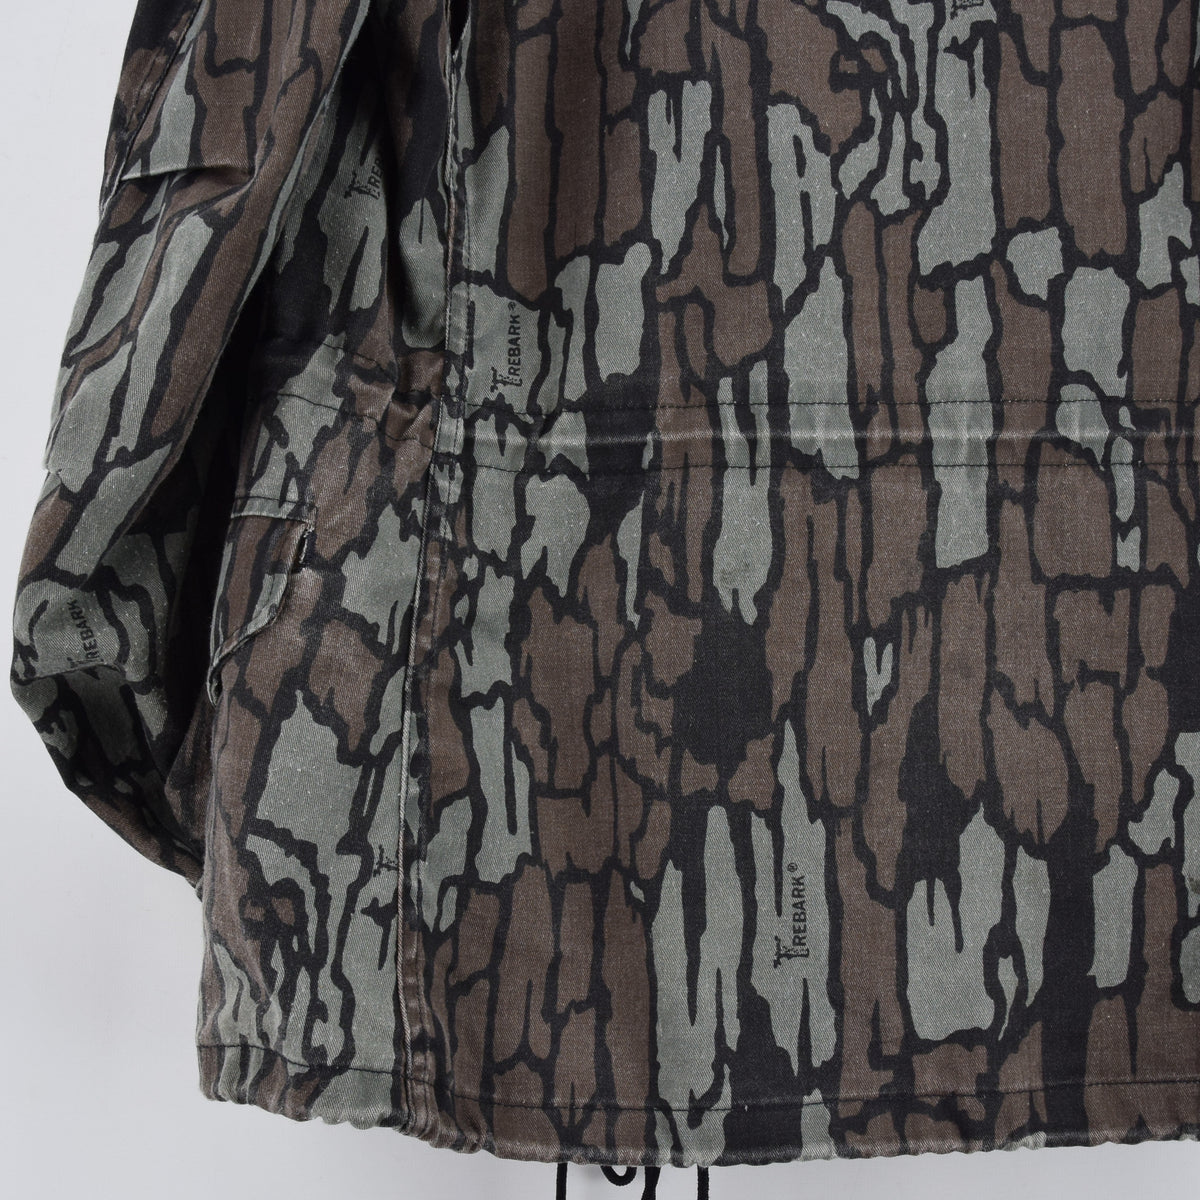 Vintage M-65 Alpha Industries Trebark Camouflage Field Coat Army Jacket M Reg back hem